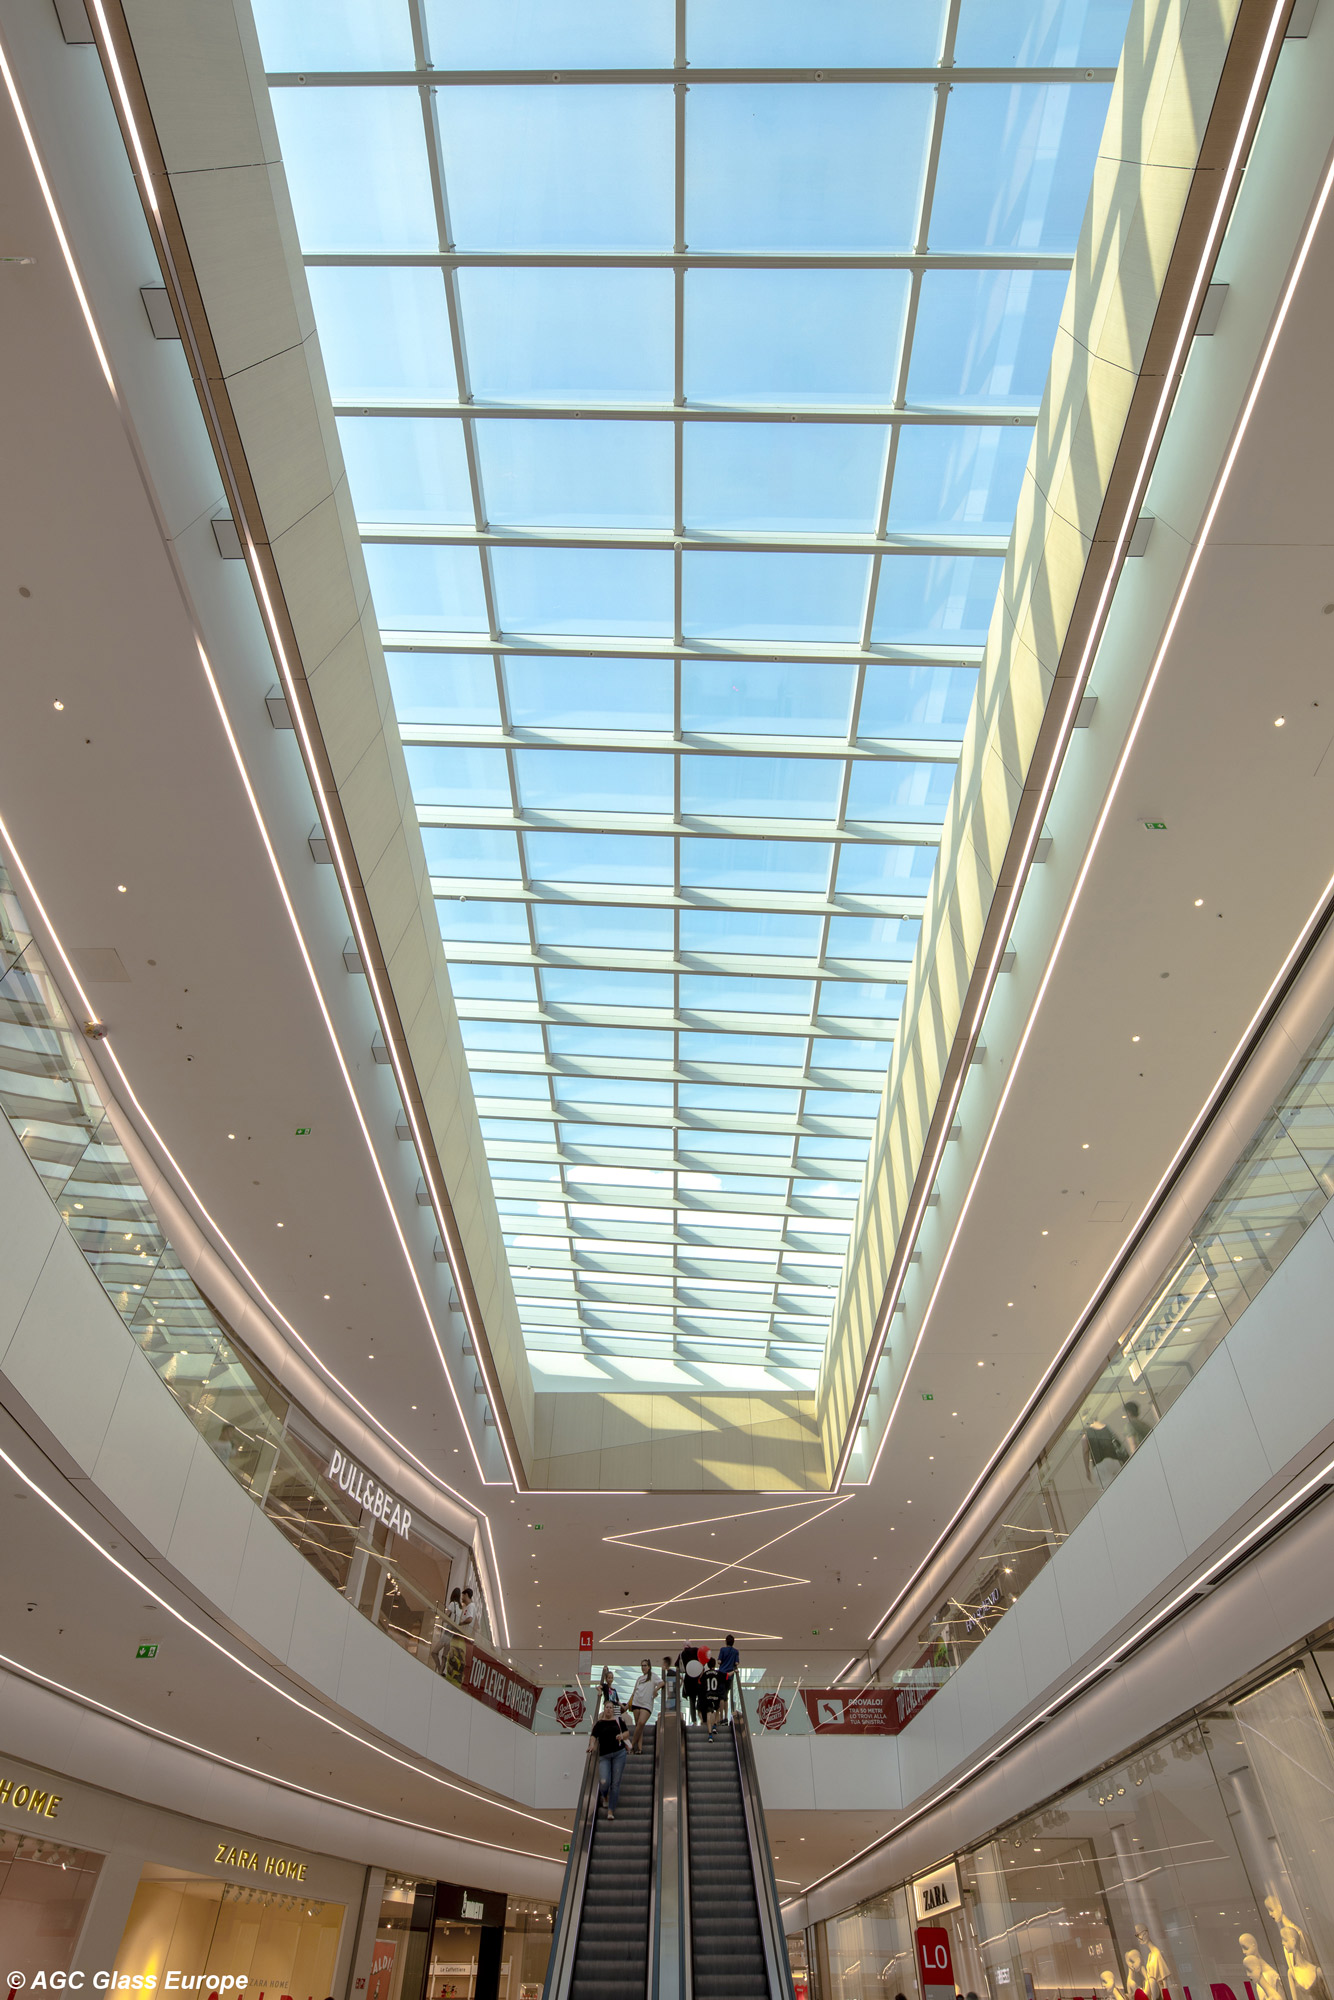 Elnòs Shopping Center Courtesy of AGC Glass Europe